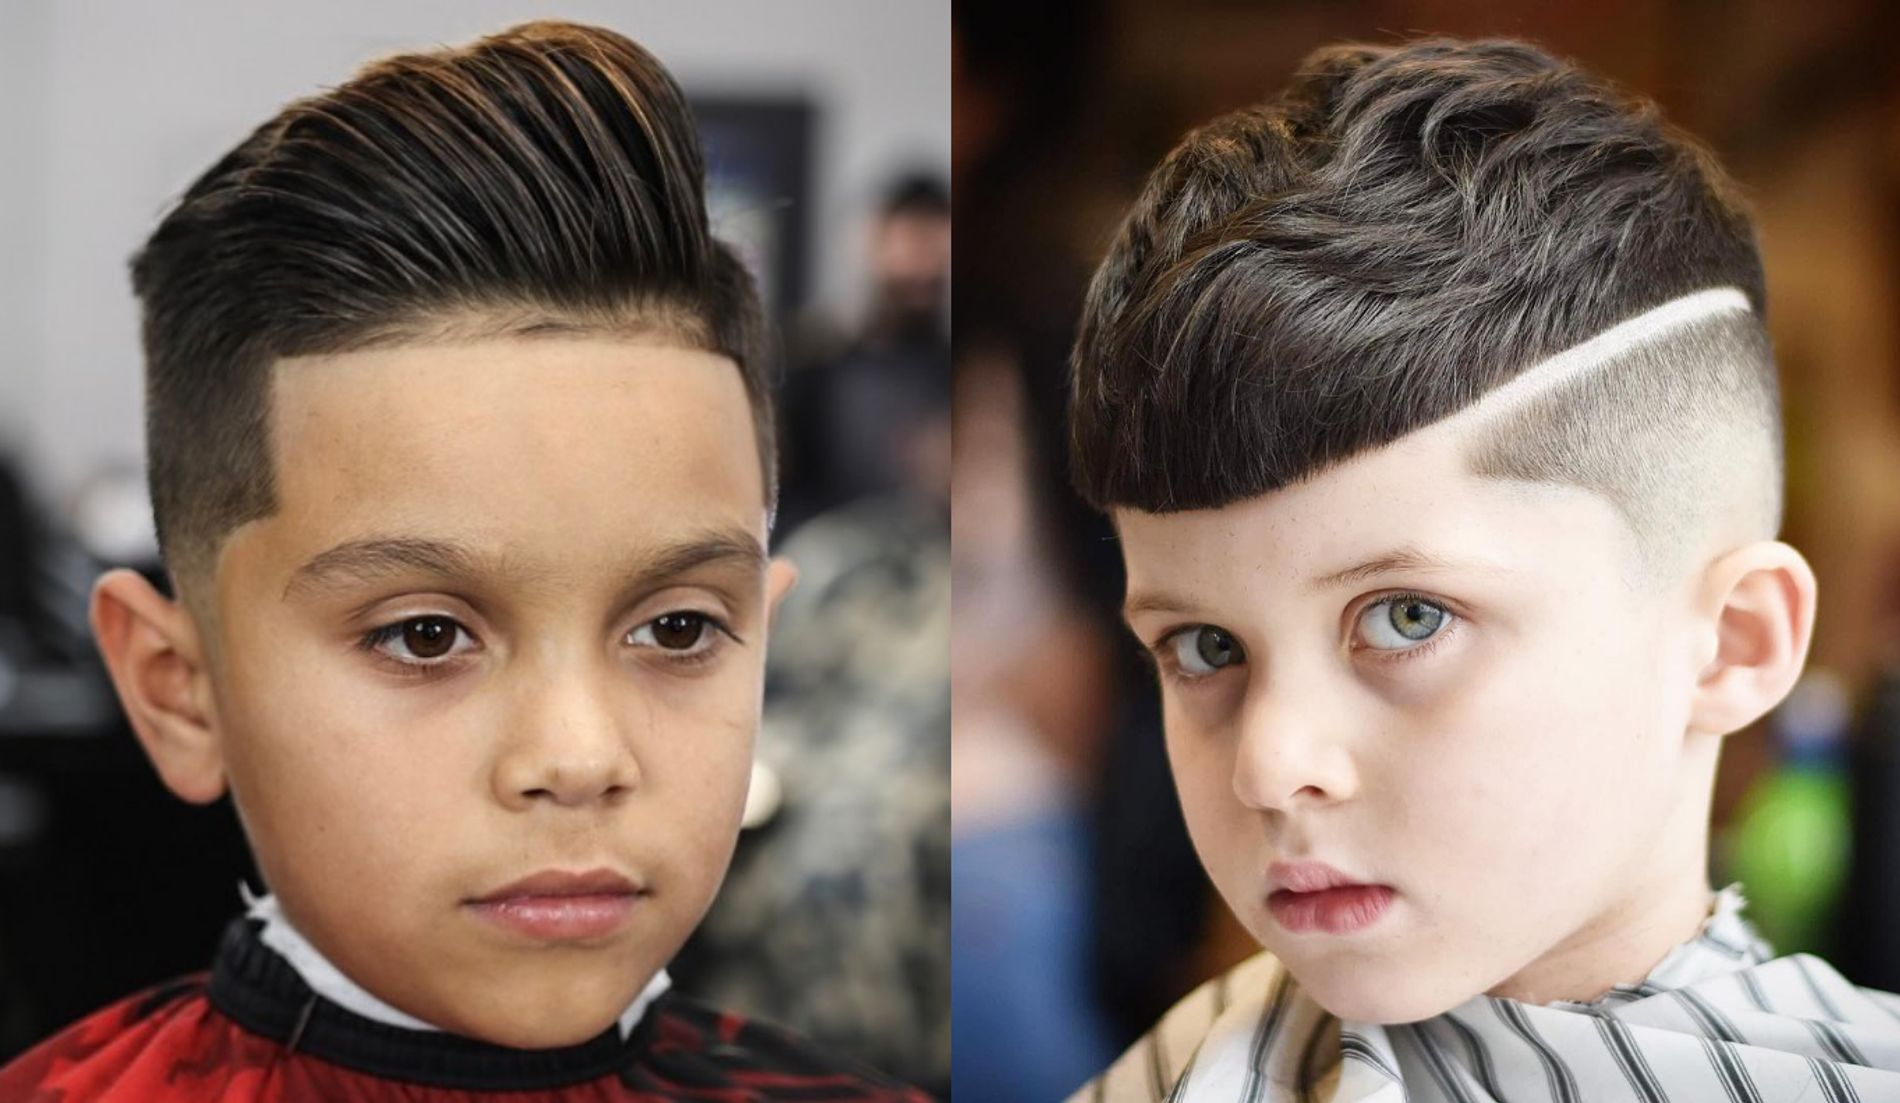 29 Coolest Haircuts For Kids 2020 Trends Stylesrant